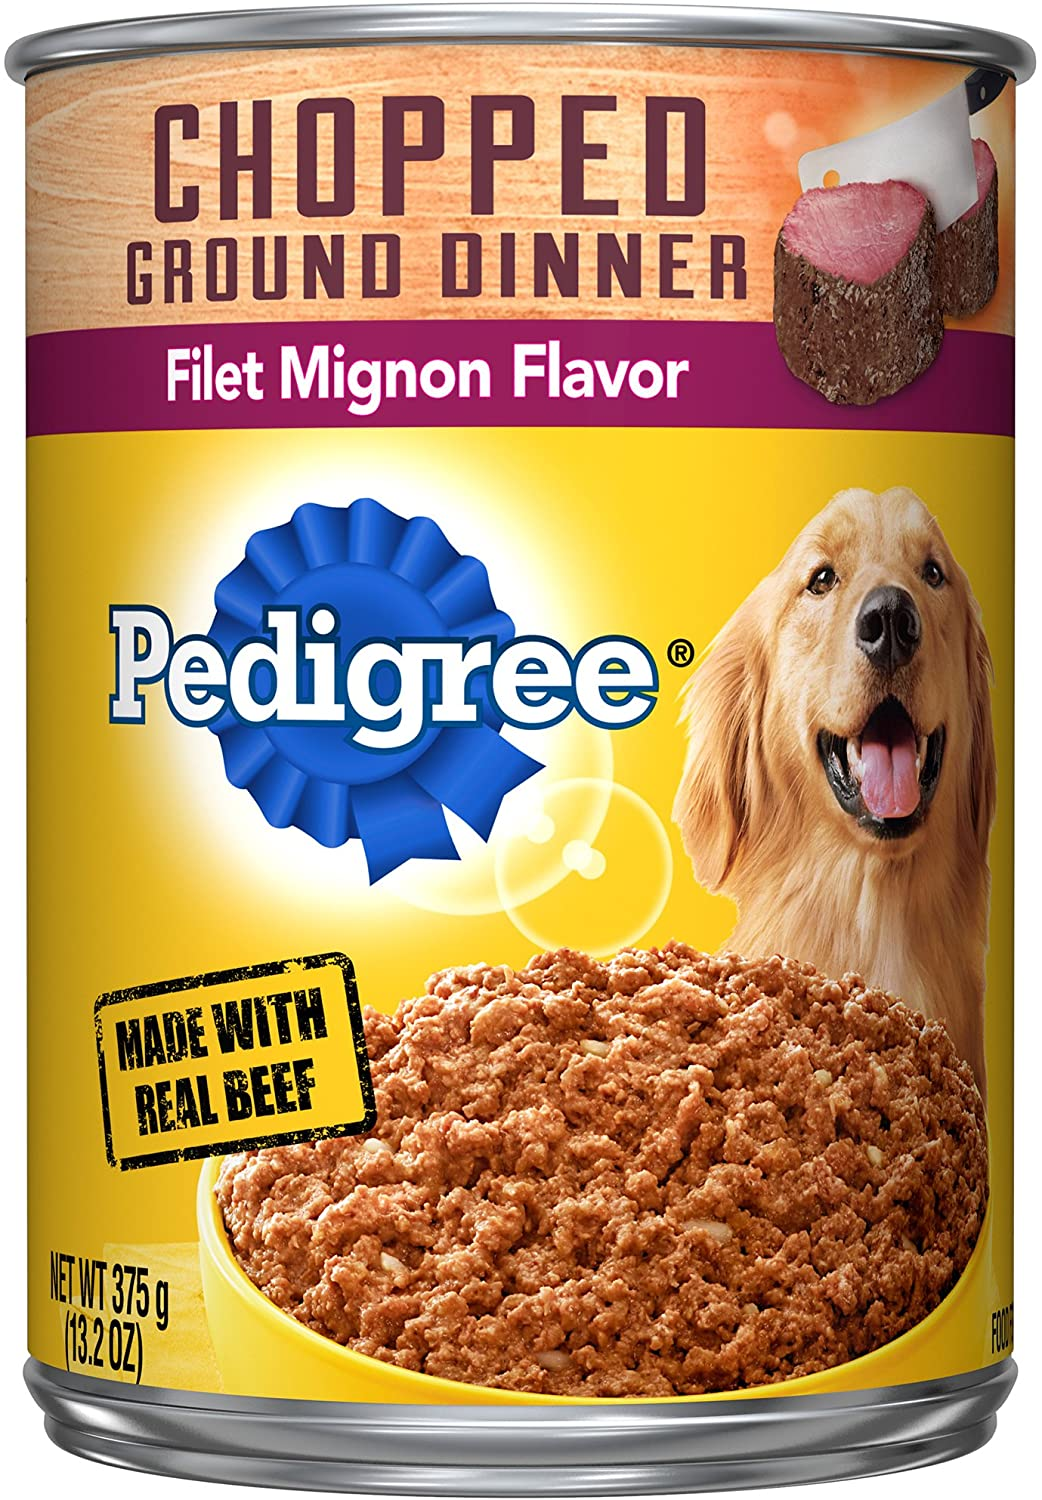 Pedigree Chopped Ground Dinner Adult Wet Dog Food, 13.2 oz. Cans